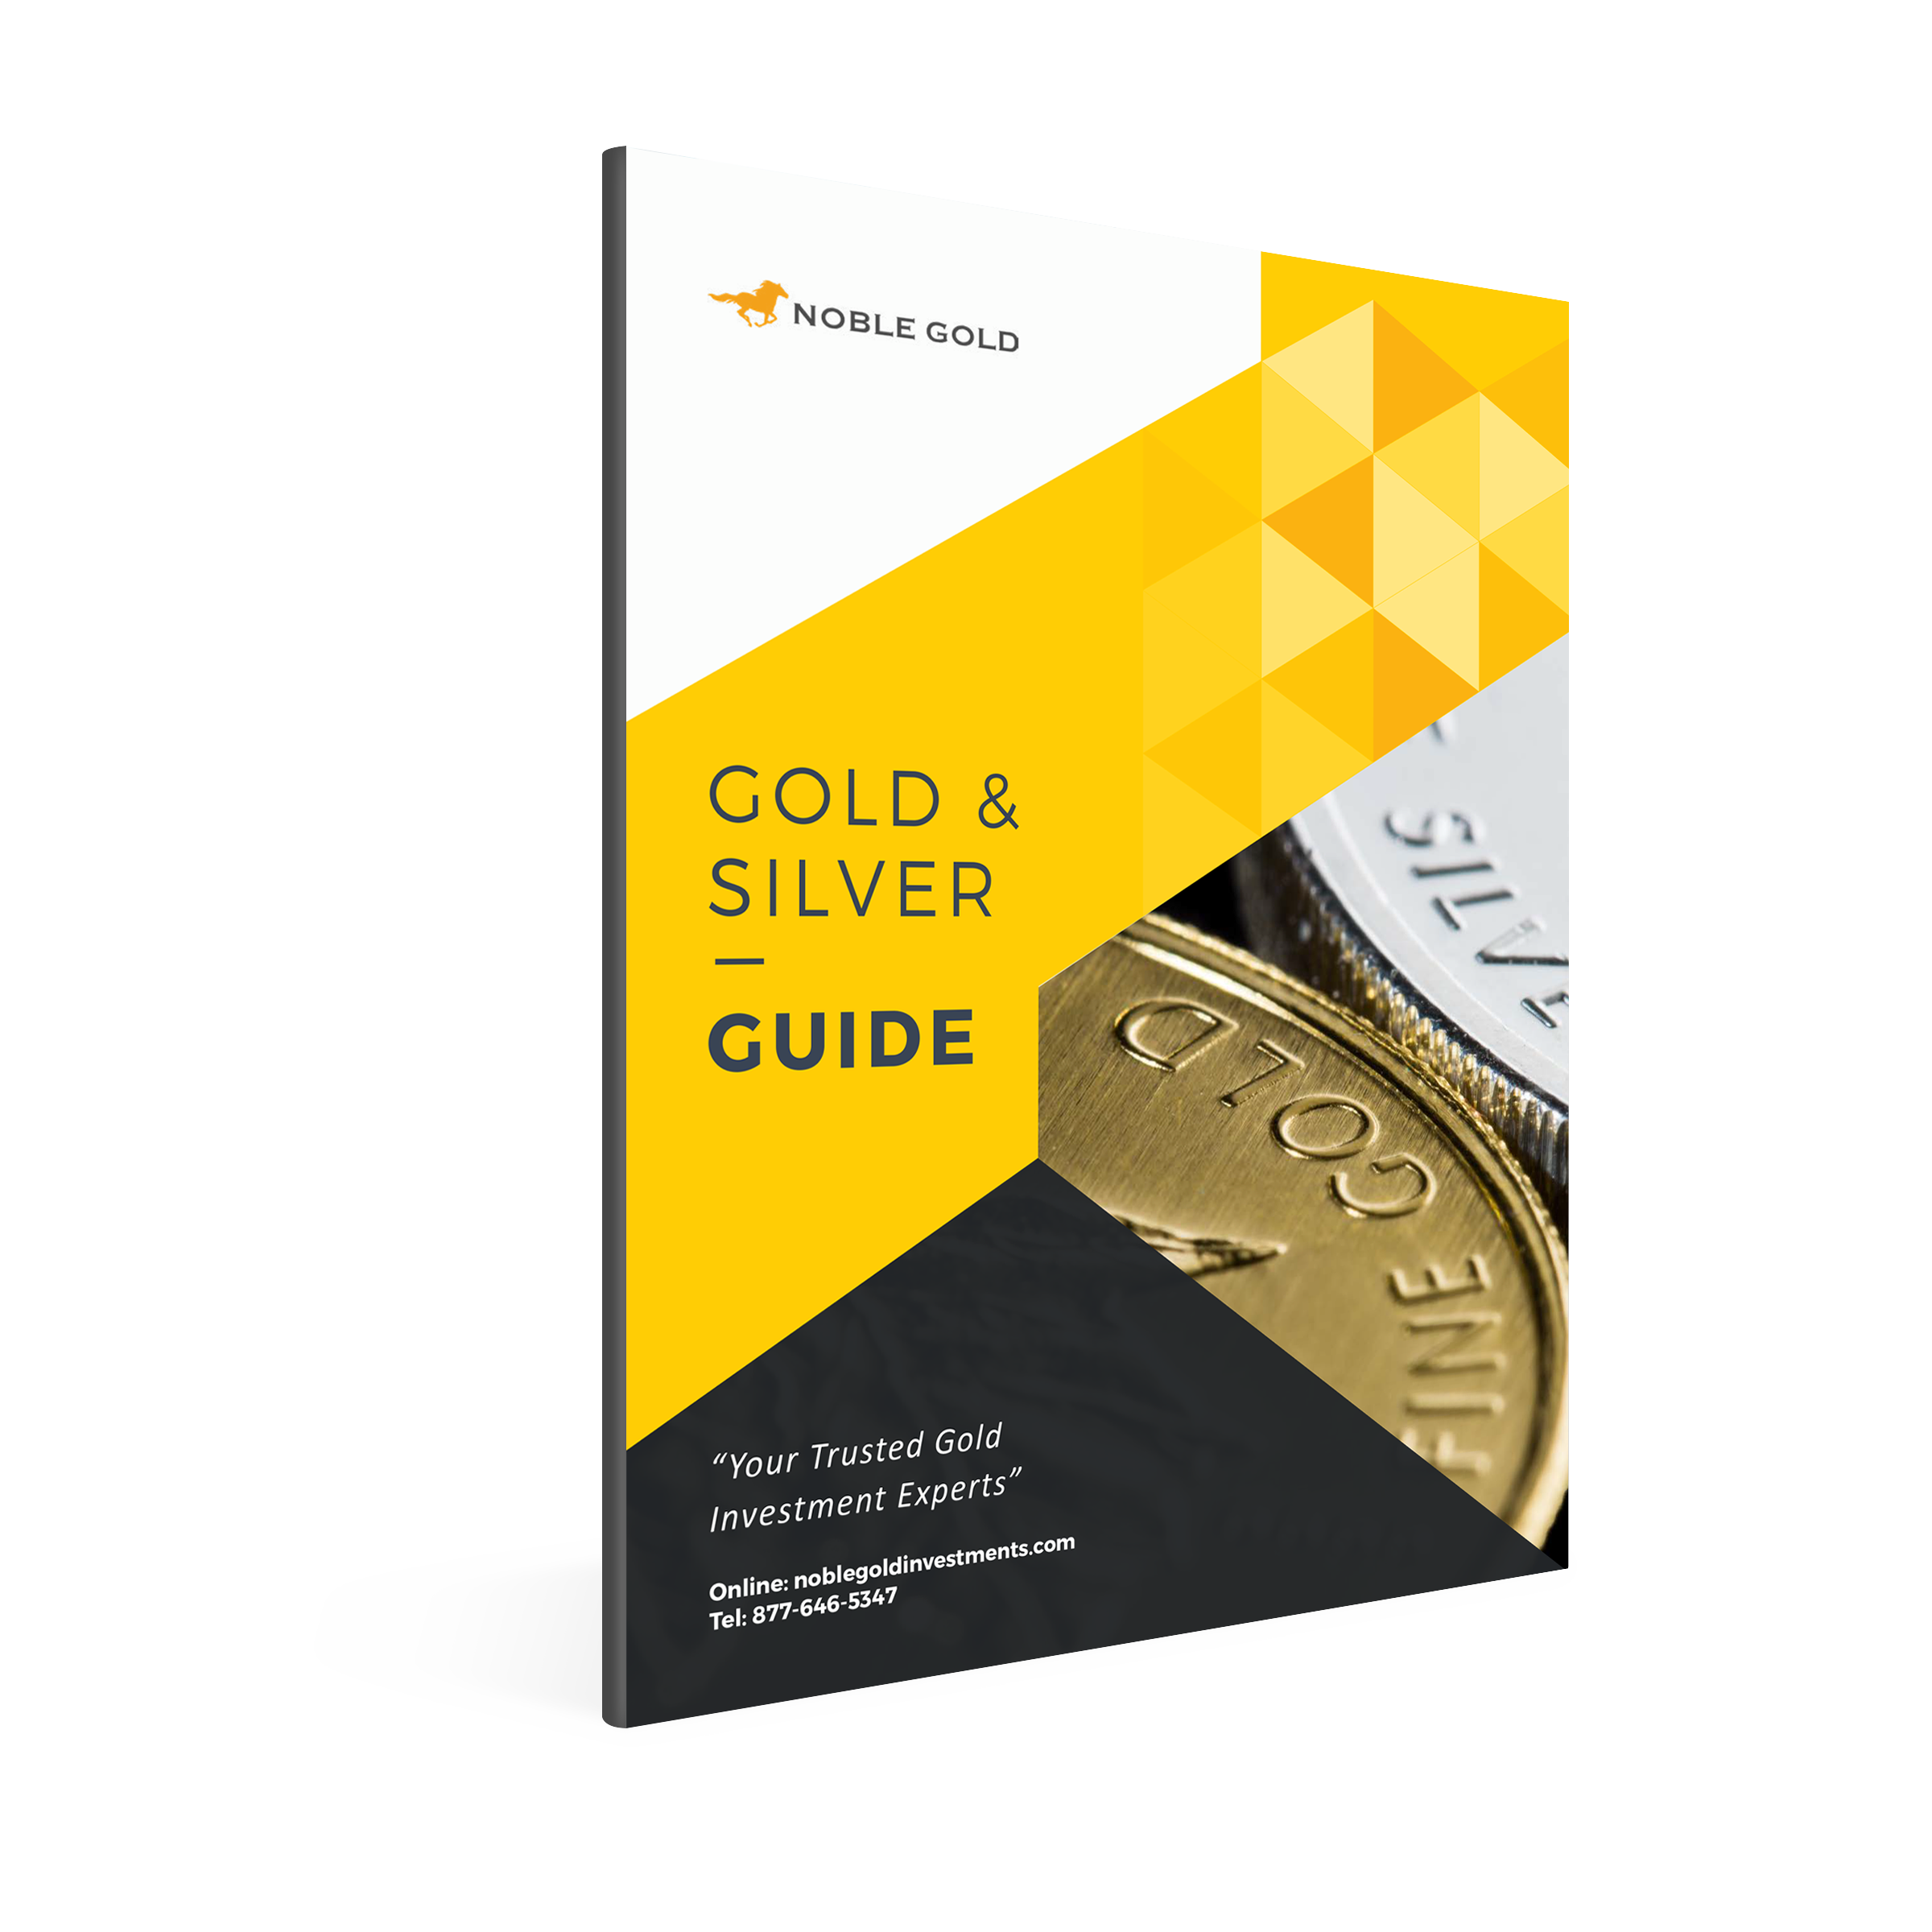 noble gold investor guide